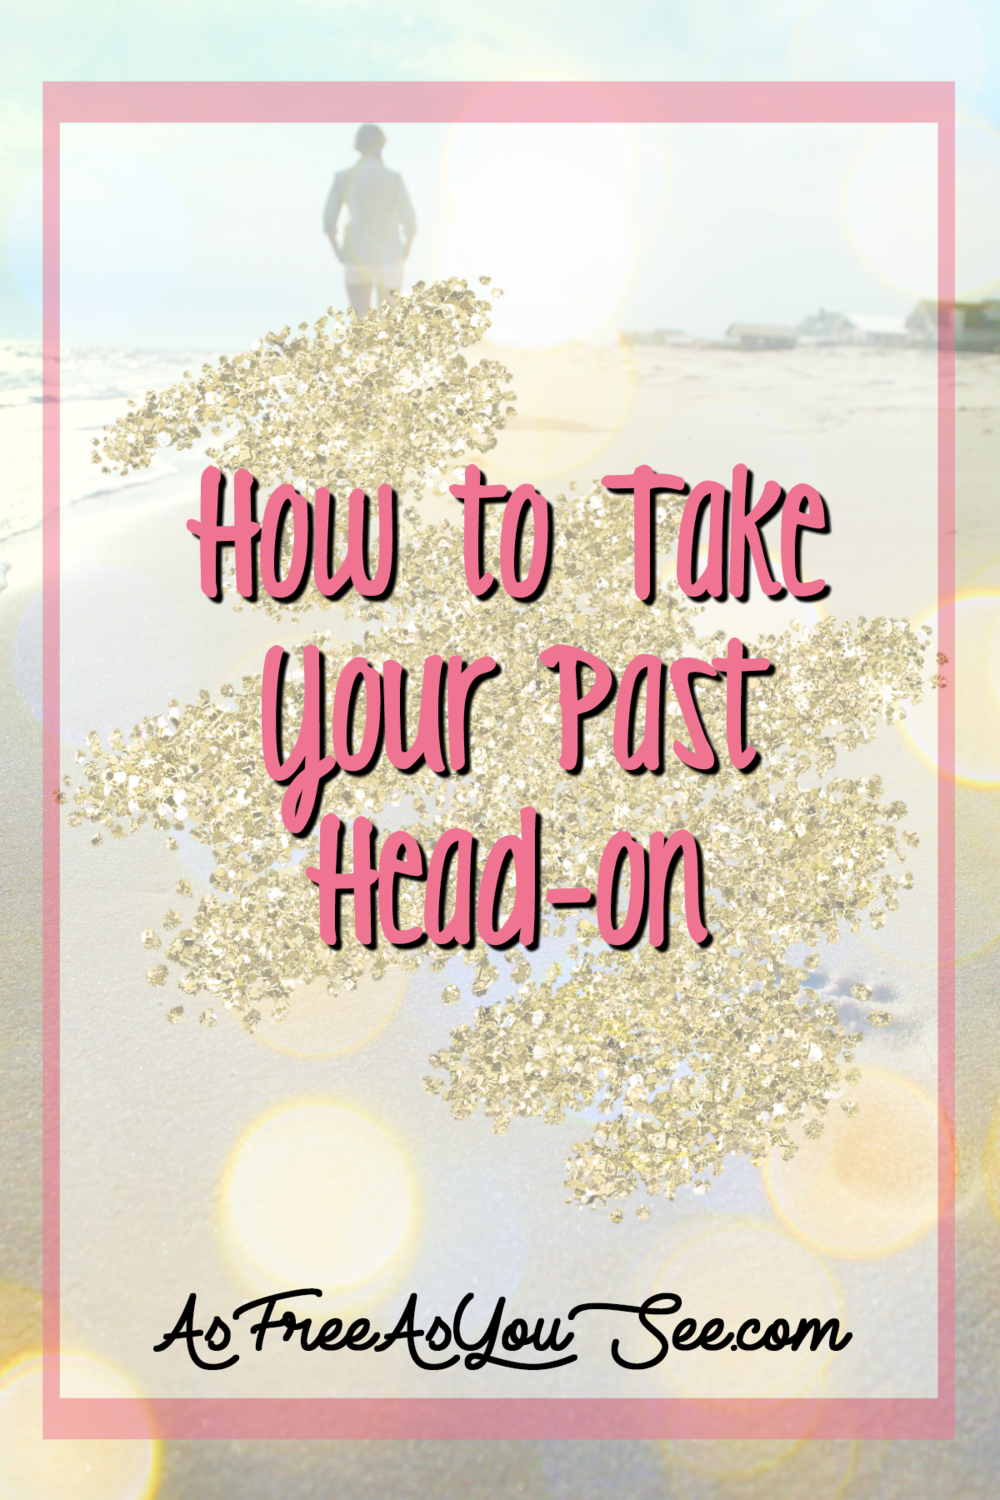 How to Take Your Past Head-on